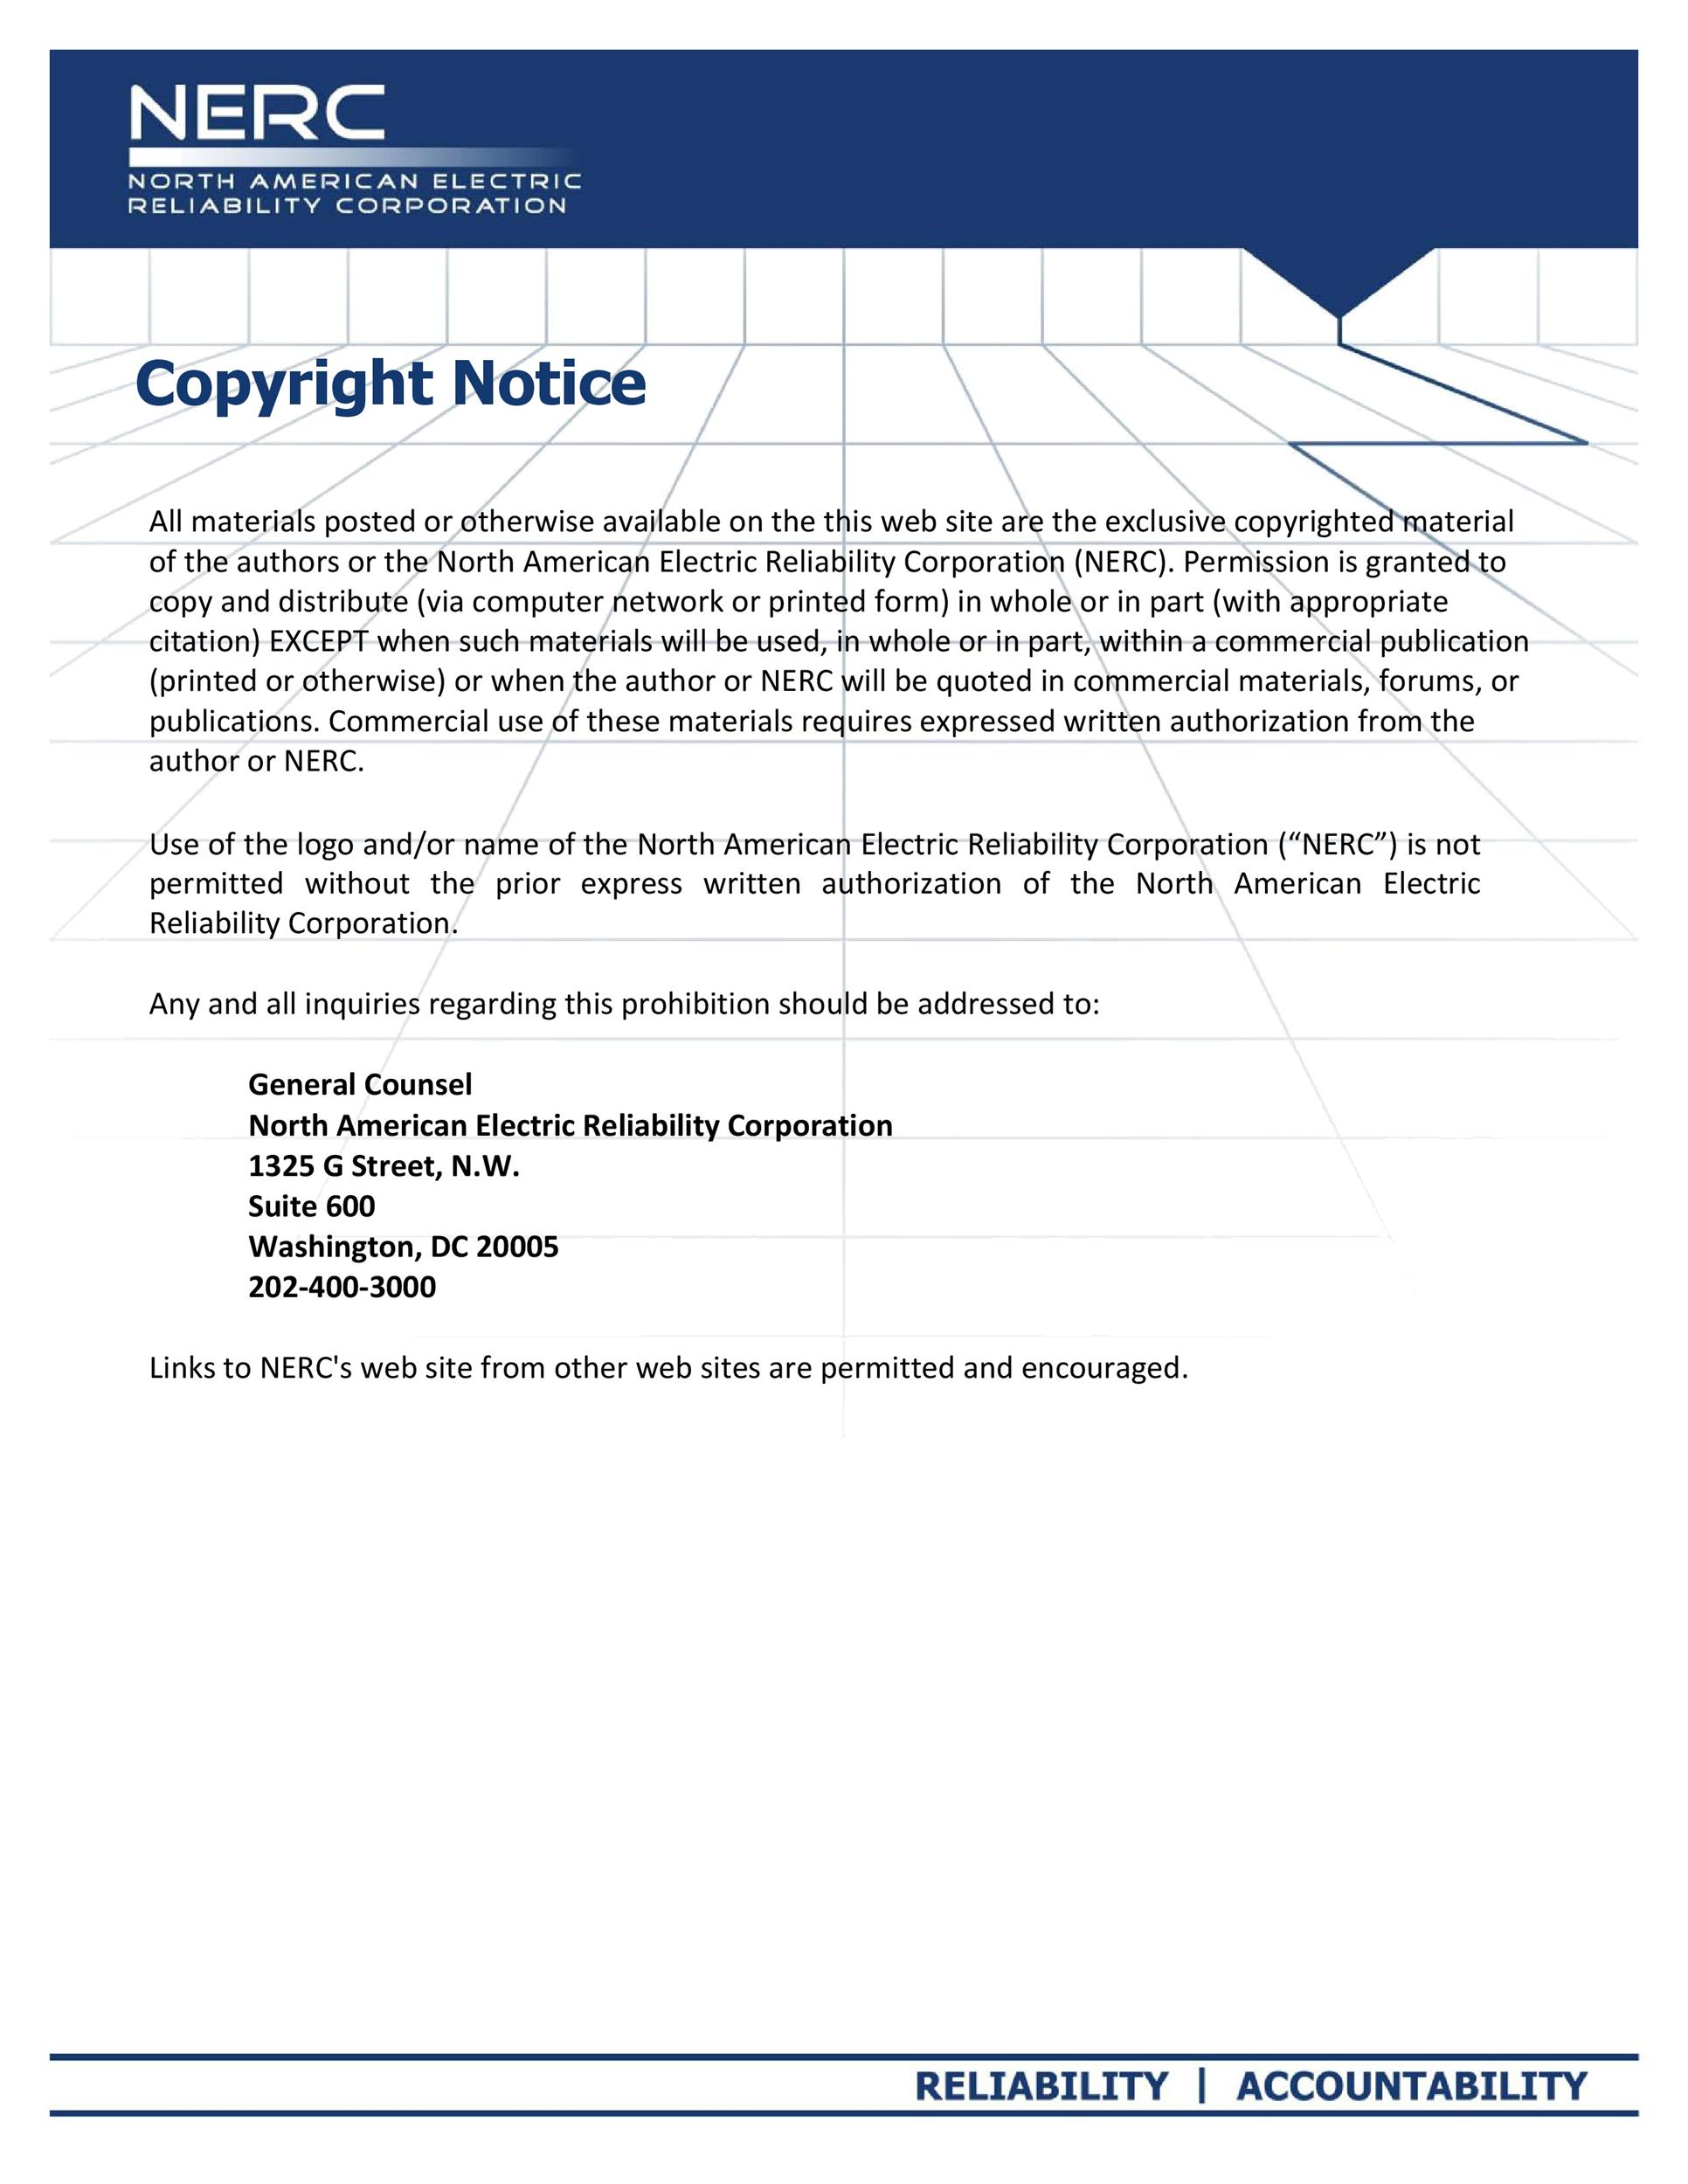 Free copyright notice example 06